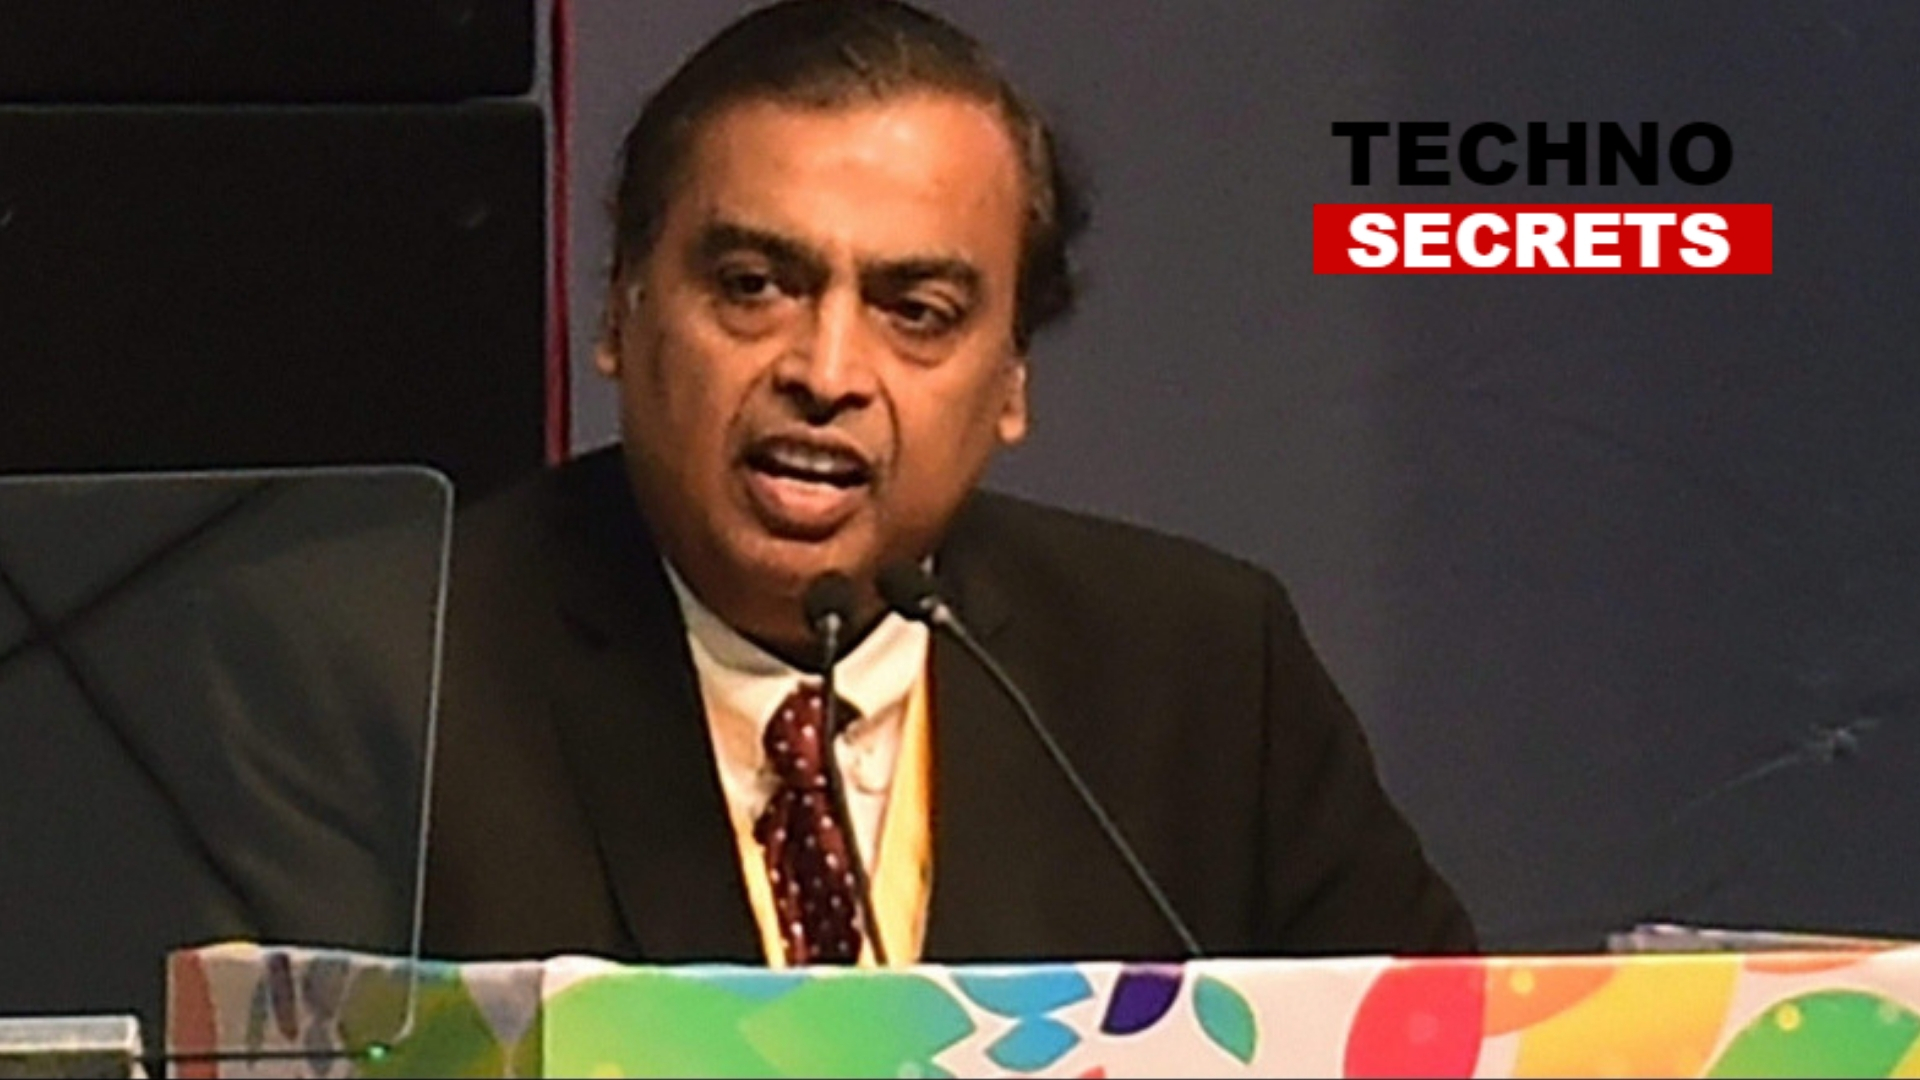 Reliance To Launch E-commerce Platform Jointly With Jio: Report